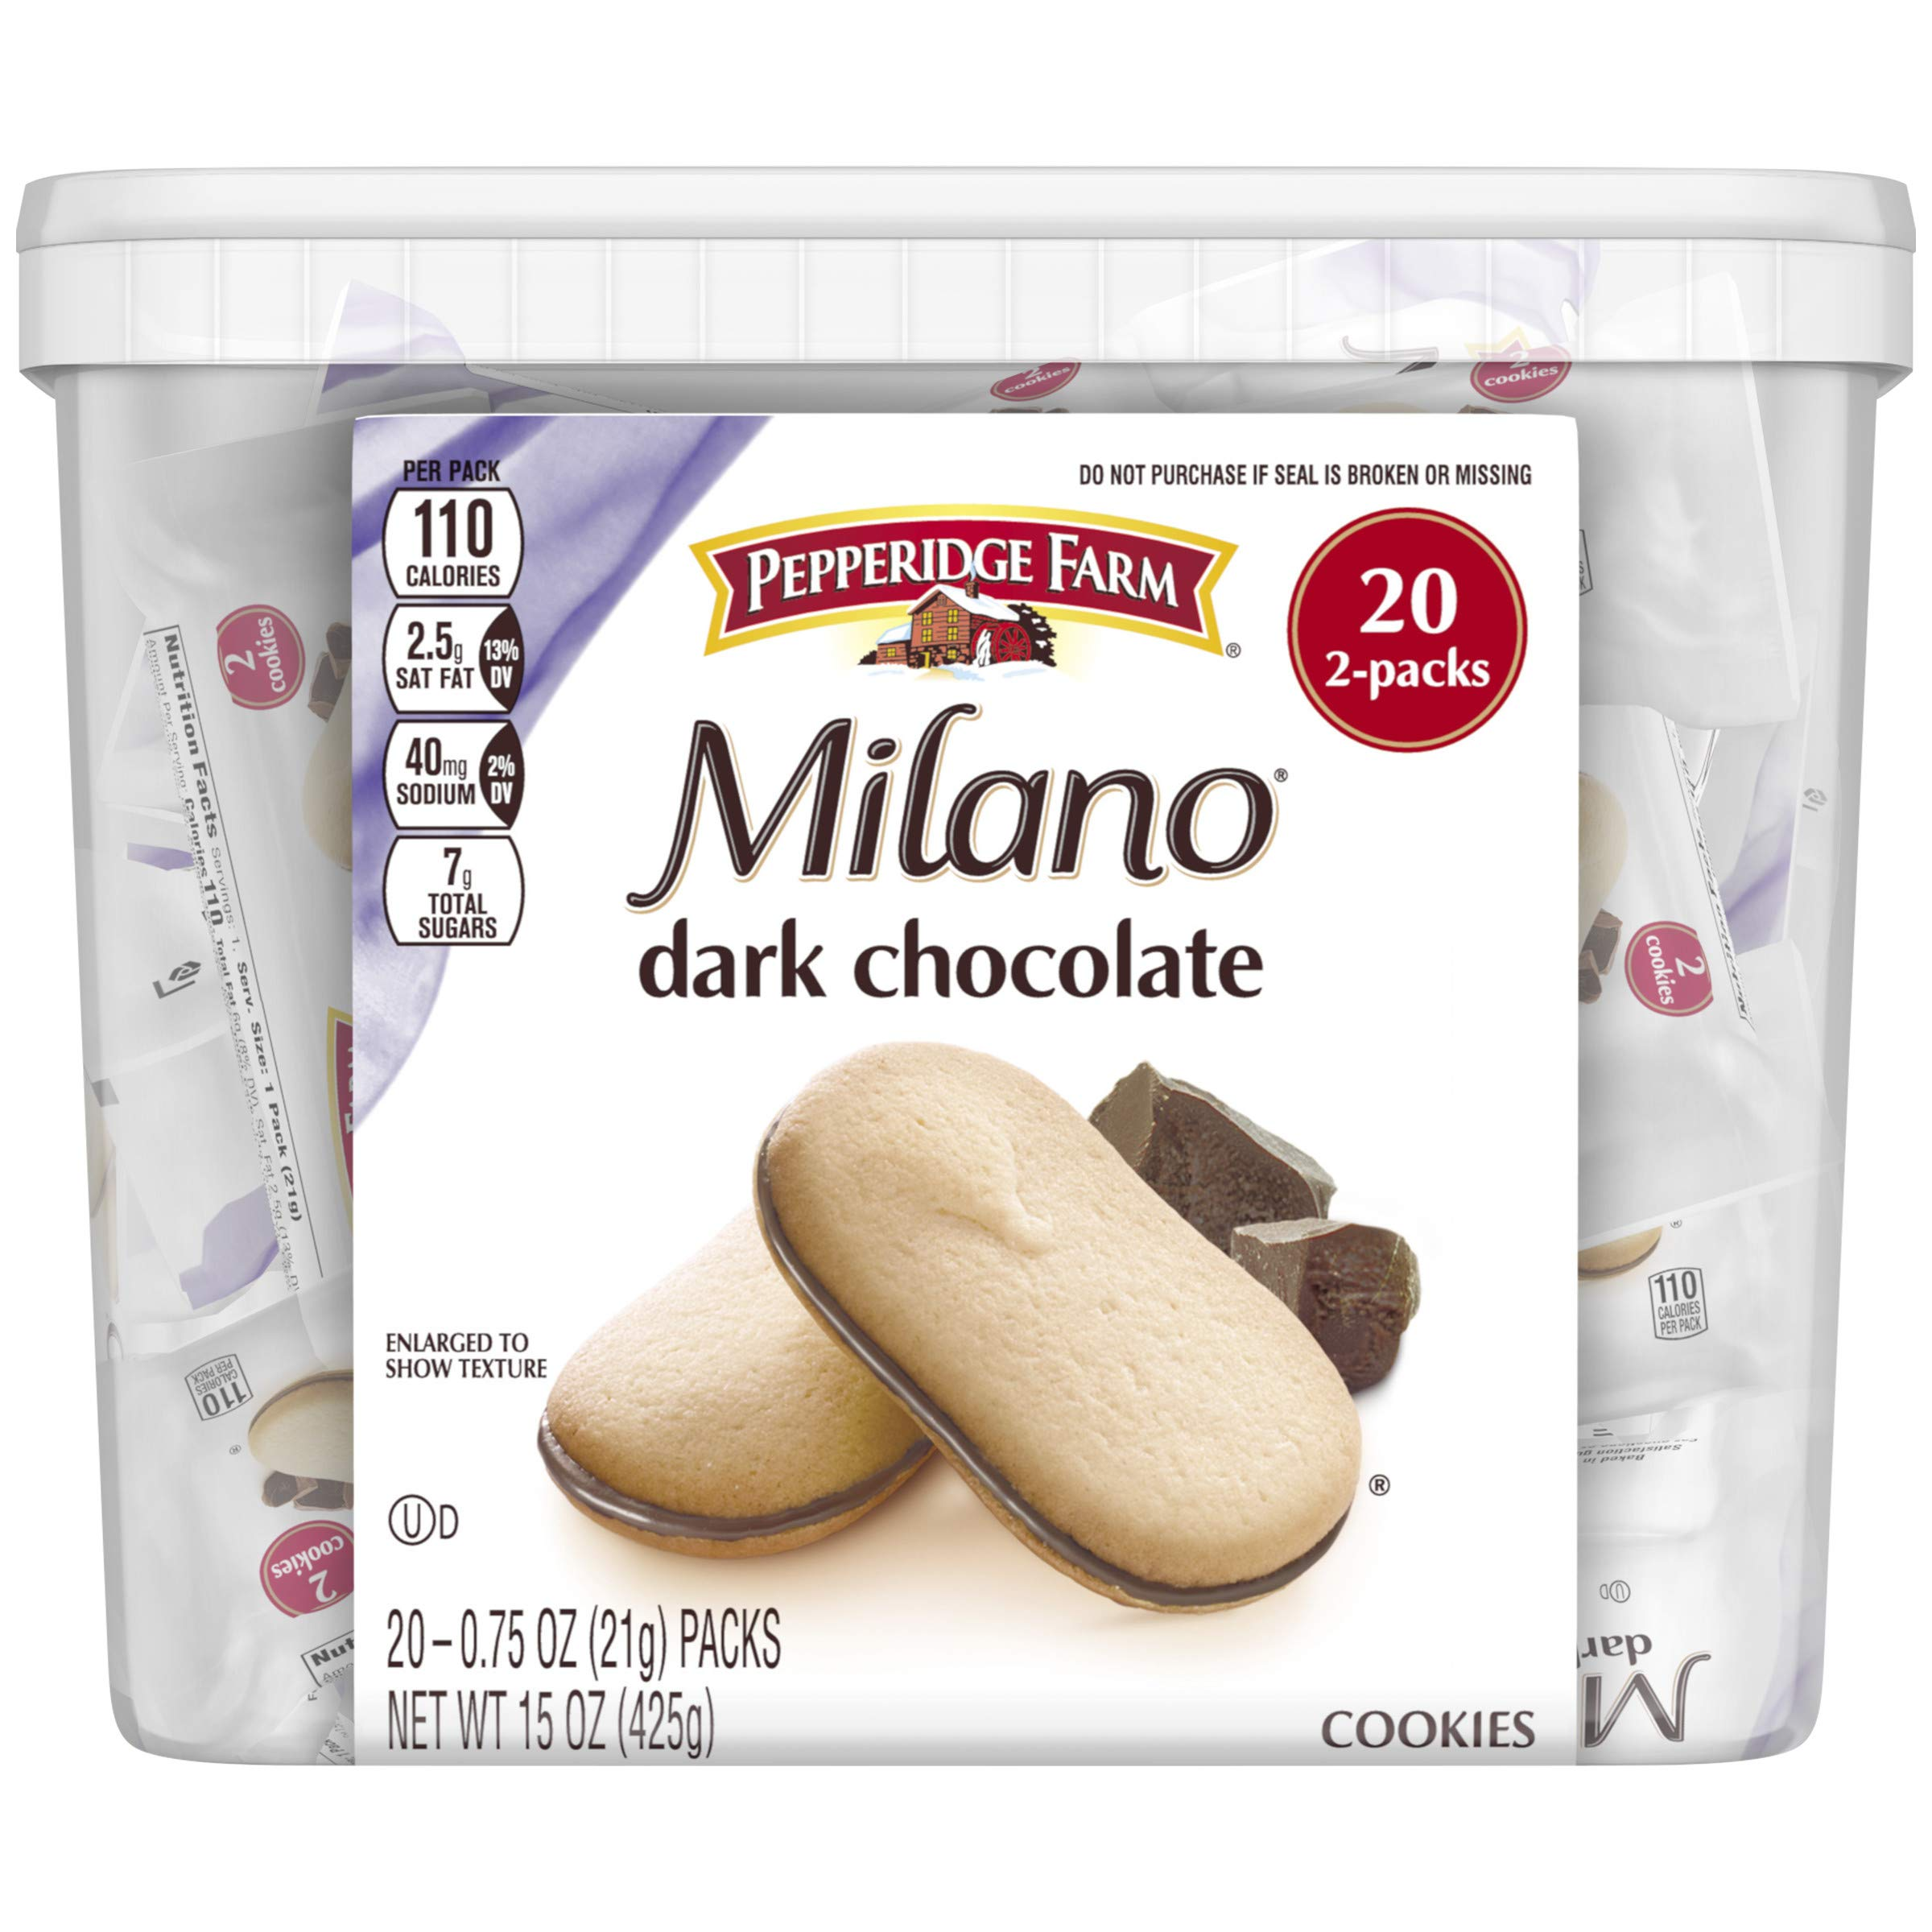 Pepperidge Farm Milano Dark Chocolate Cookies, 15 Ounce Multipack Tub, 20 Count, White